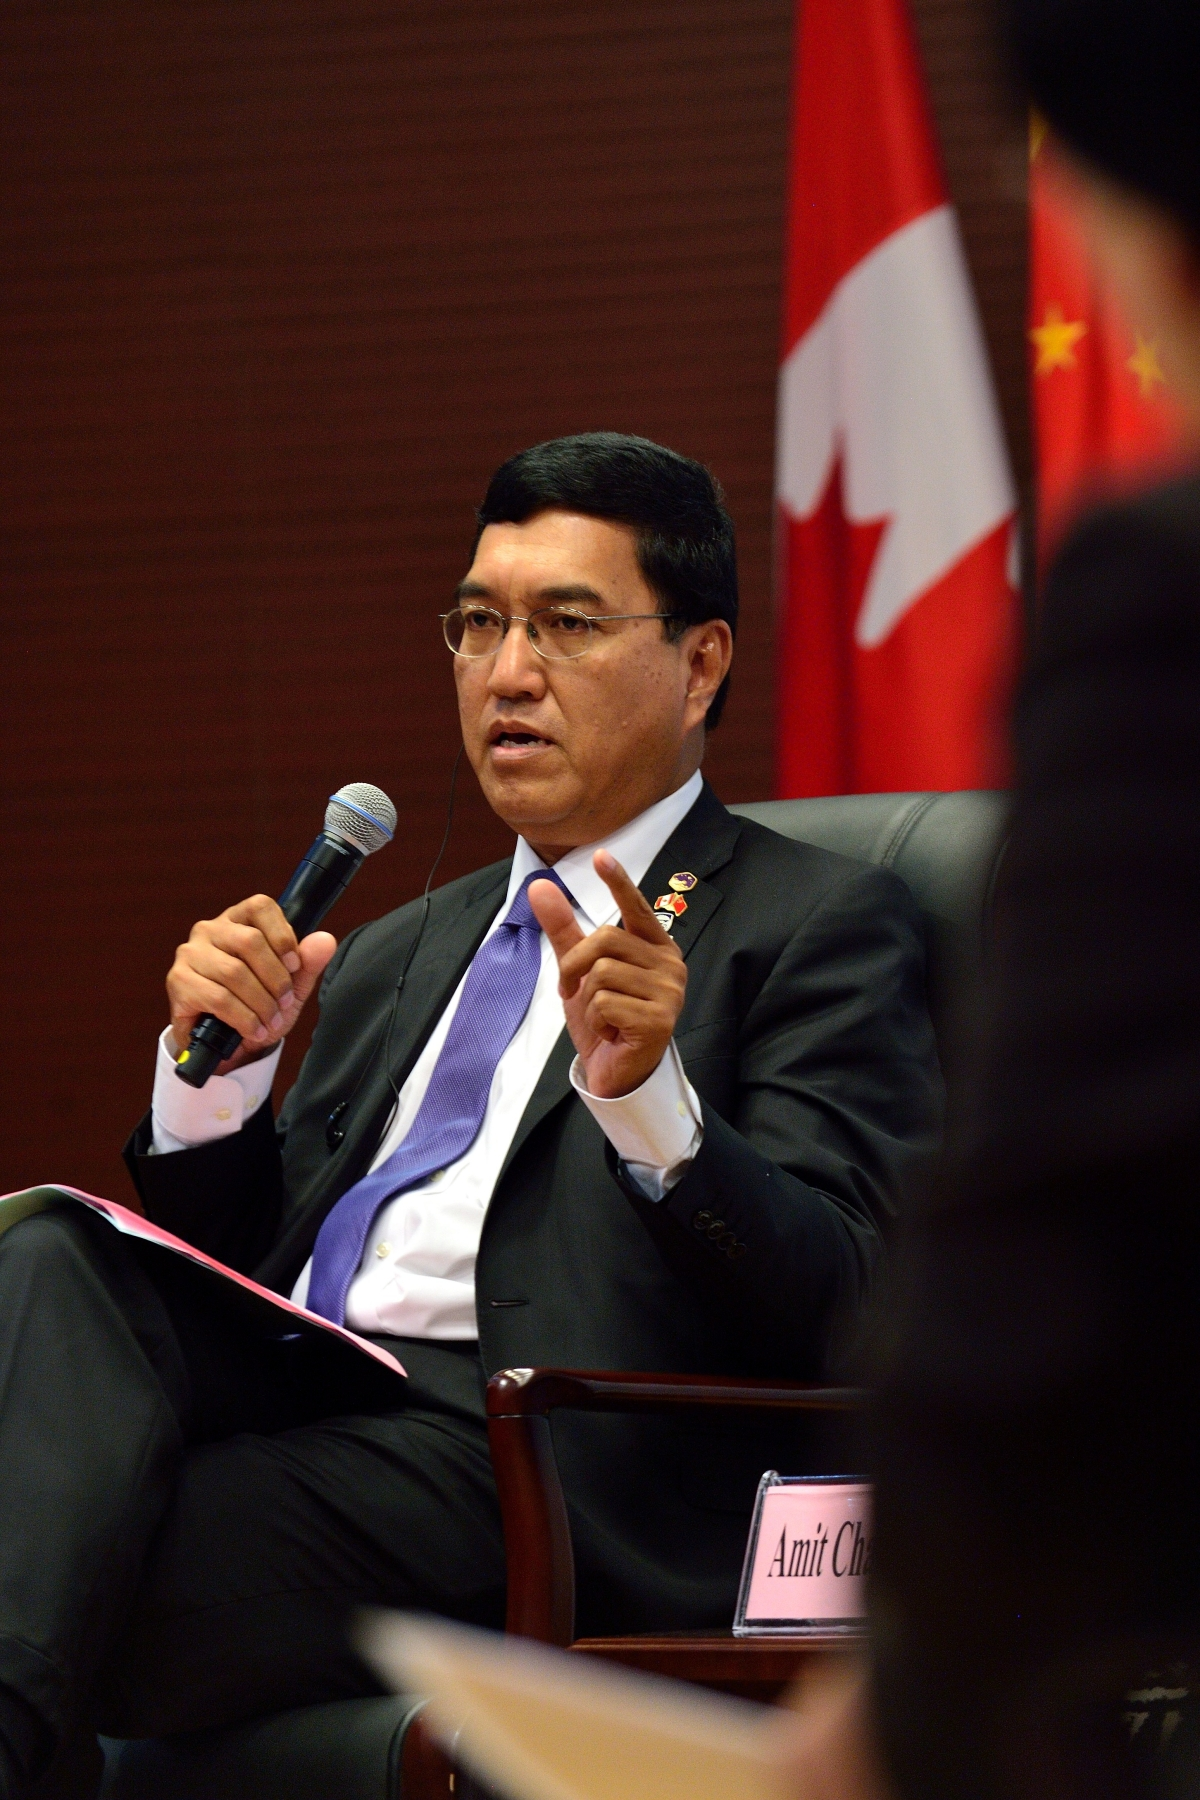 Dr. Amit Chakma, President and Vice-Chancellor of Western University during the discussion on 'Fostering Learning and Innovation'.